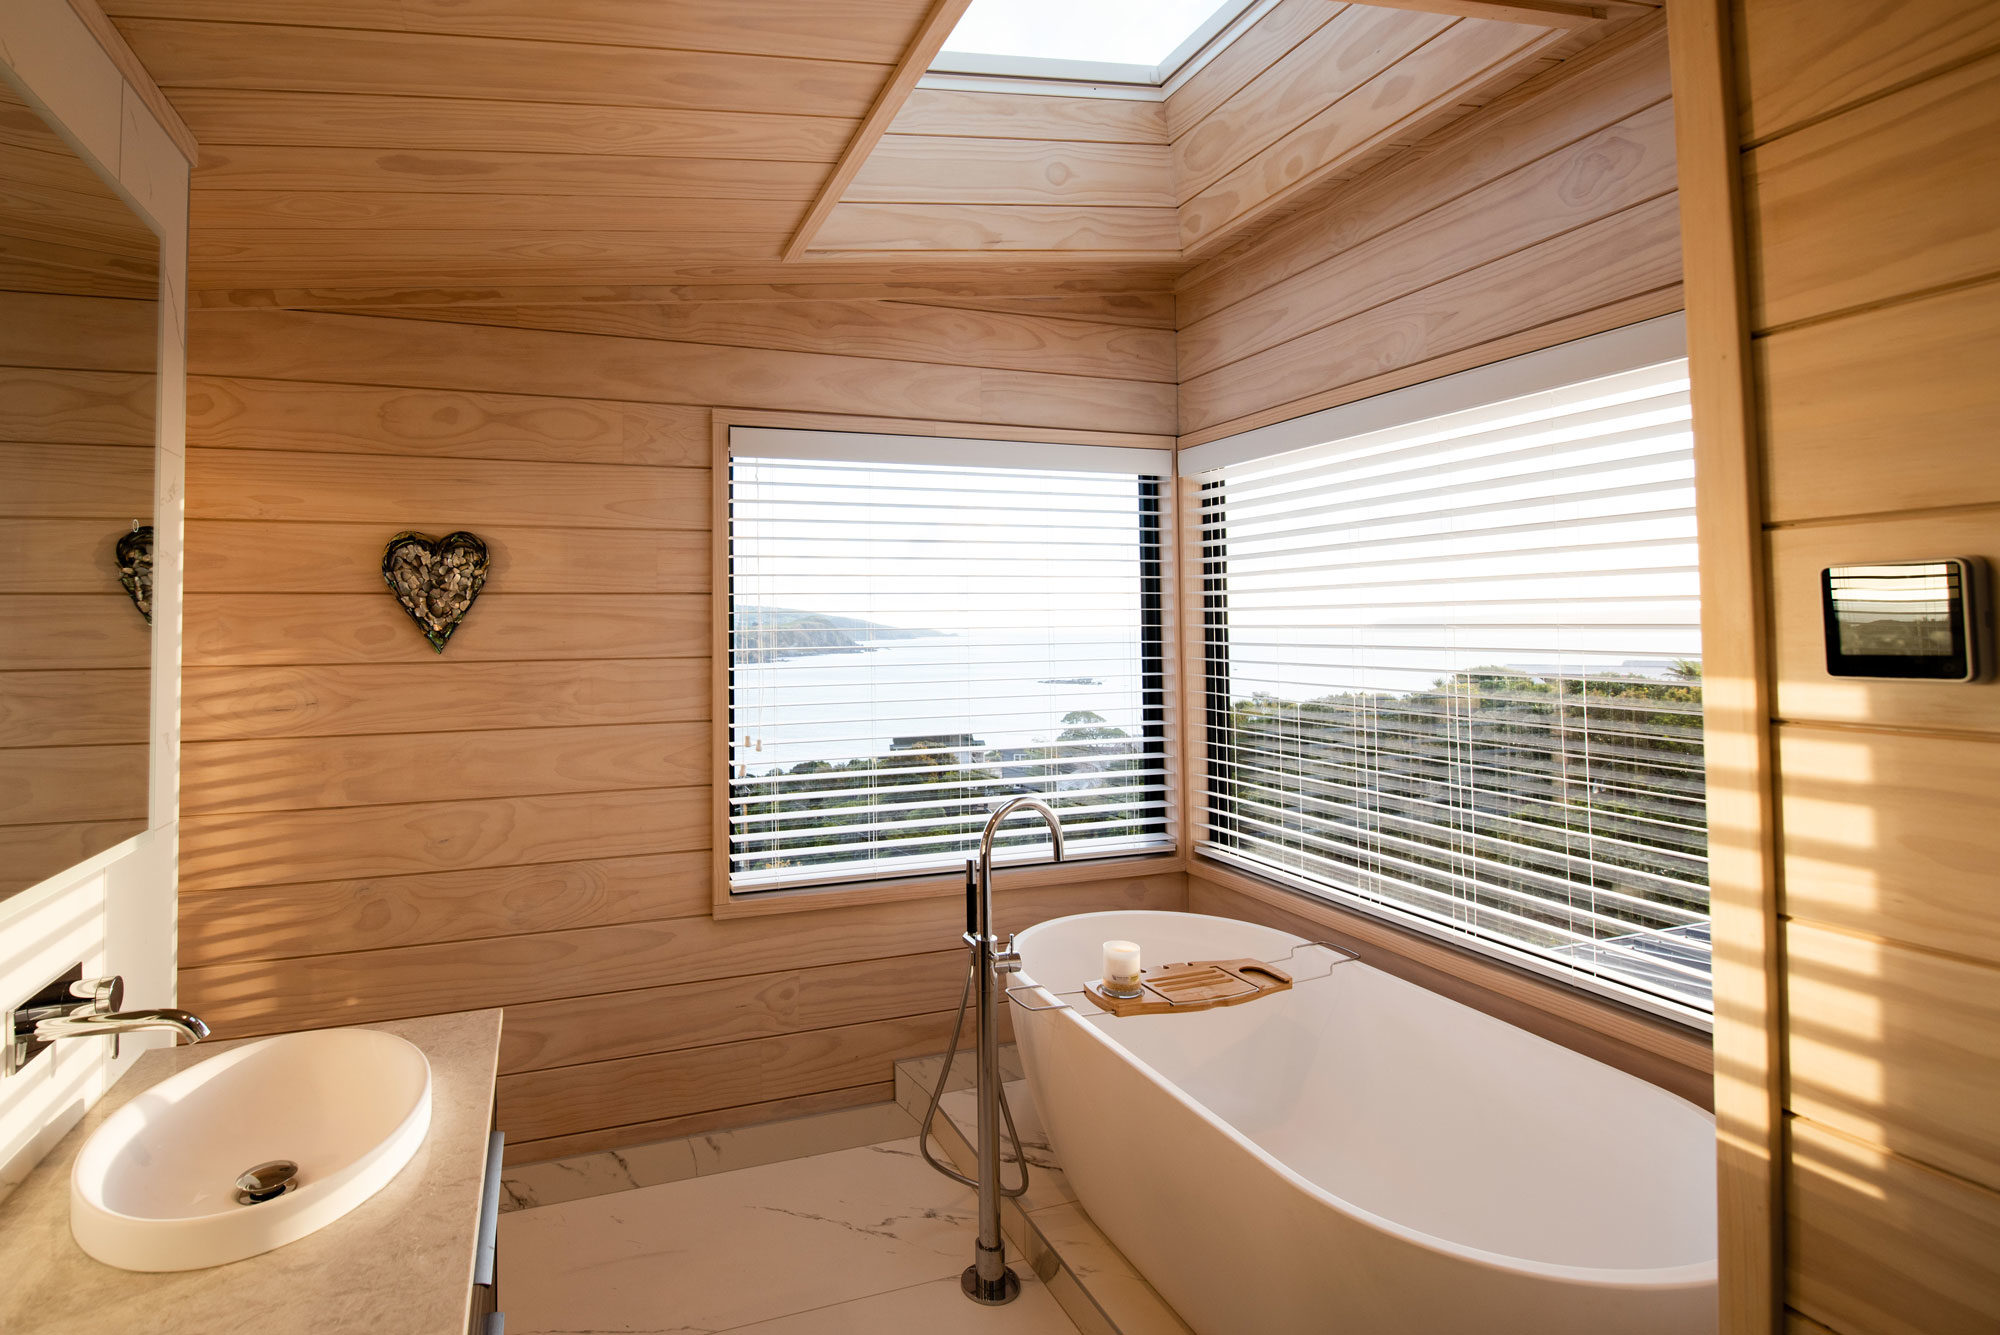 Stand alone bath in a Lockwood home with skylight and amazing views